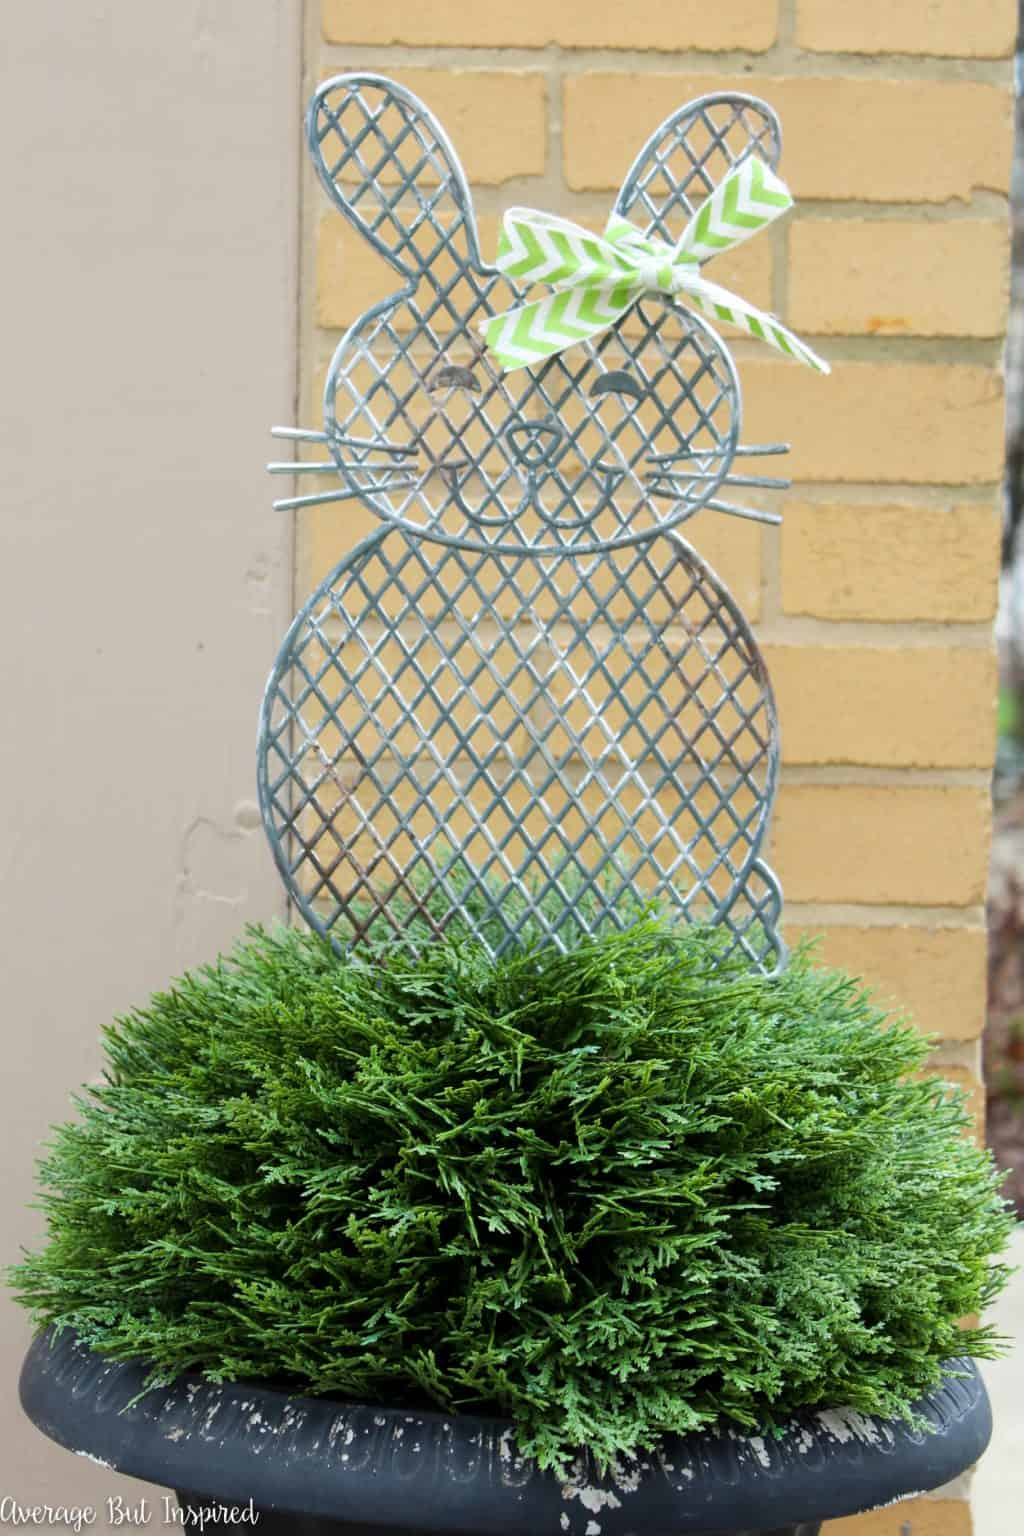 Give plastic dollar store planter stakes a beautiful makeover with a faux metal finish! Learn how to easily upgrade the look of these cute spring decorations in this post.